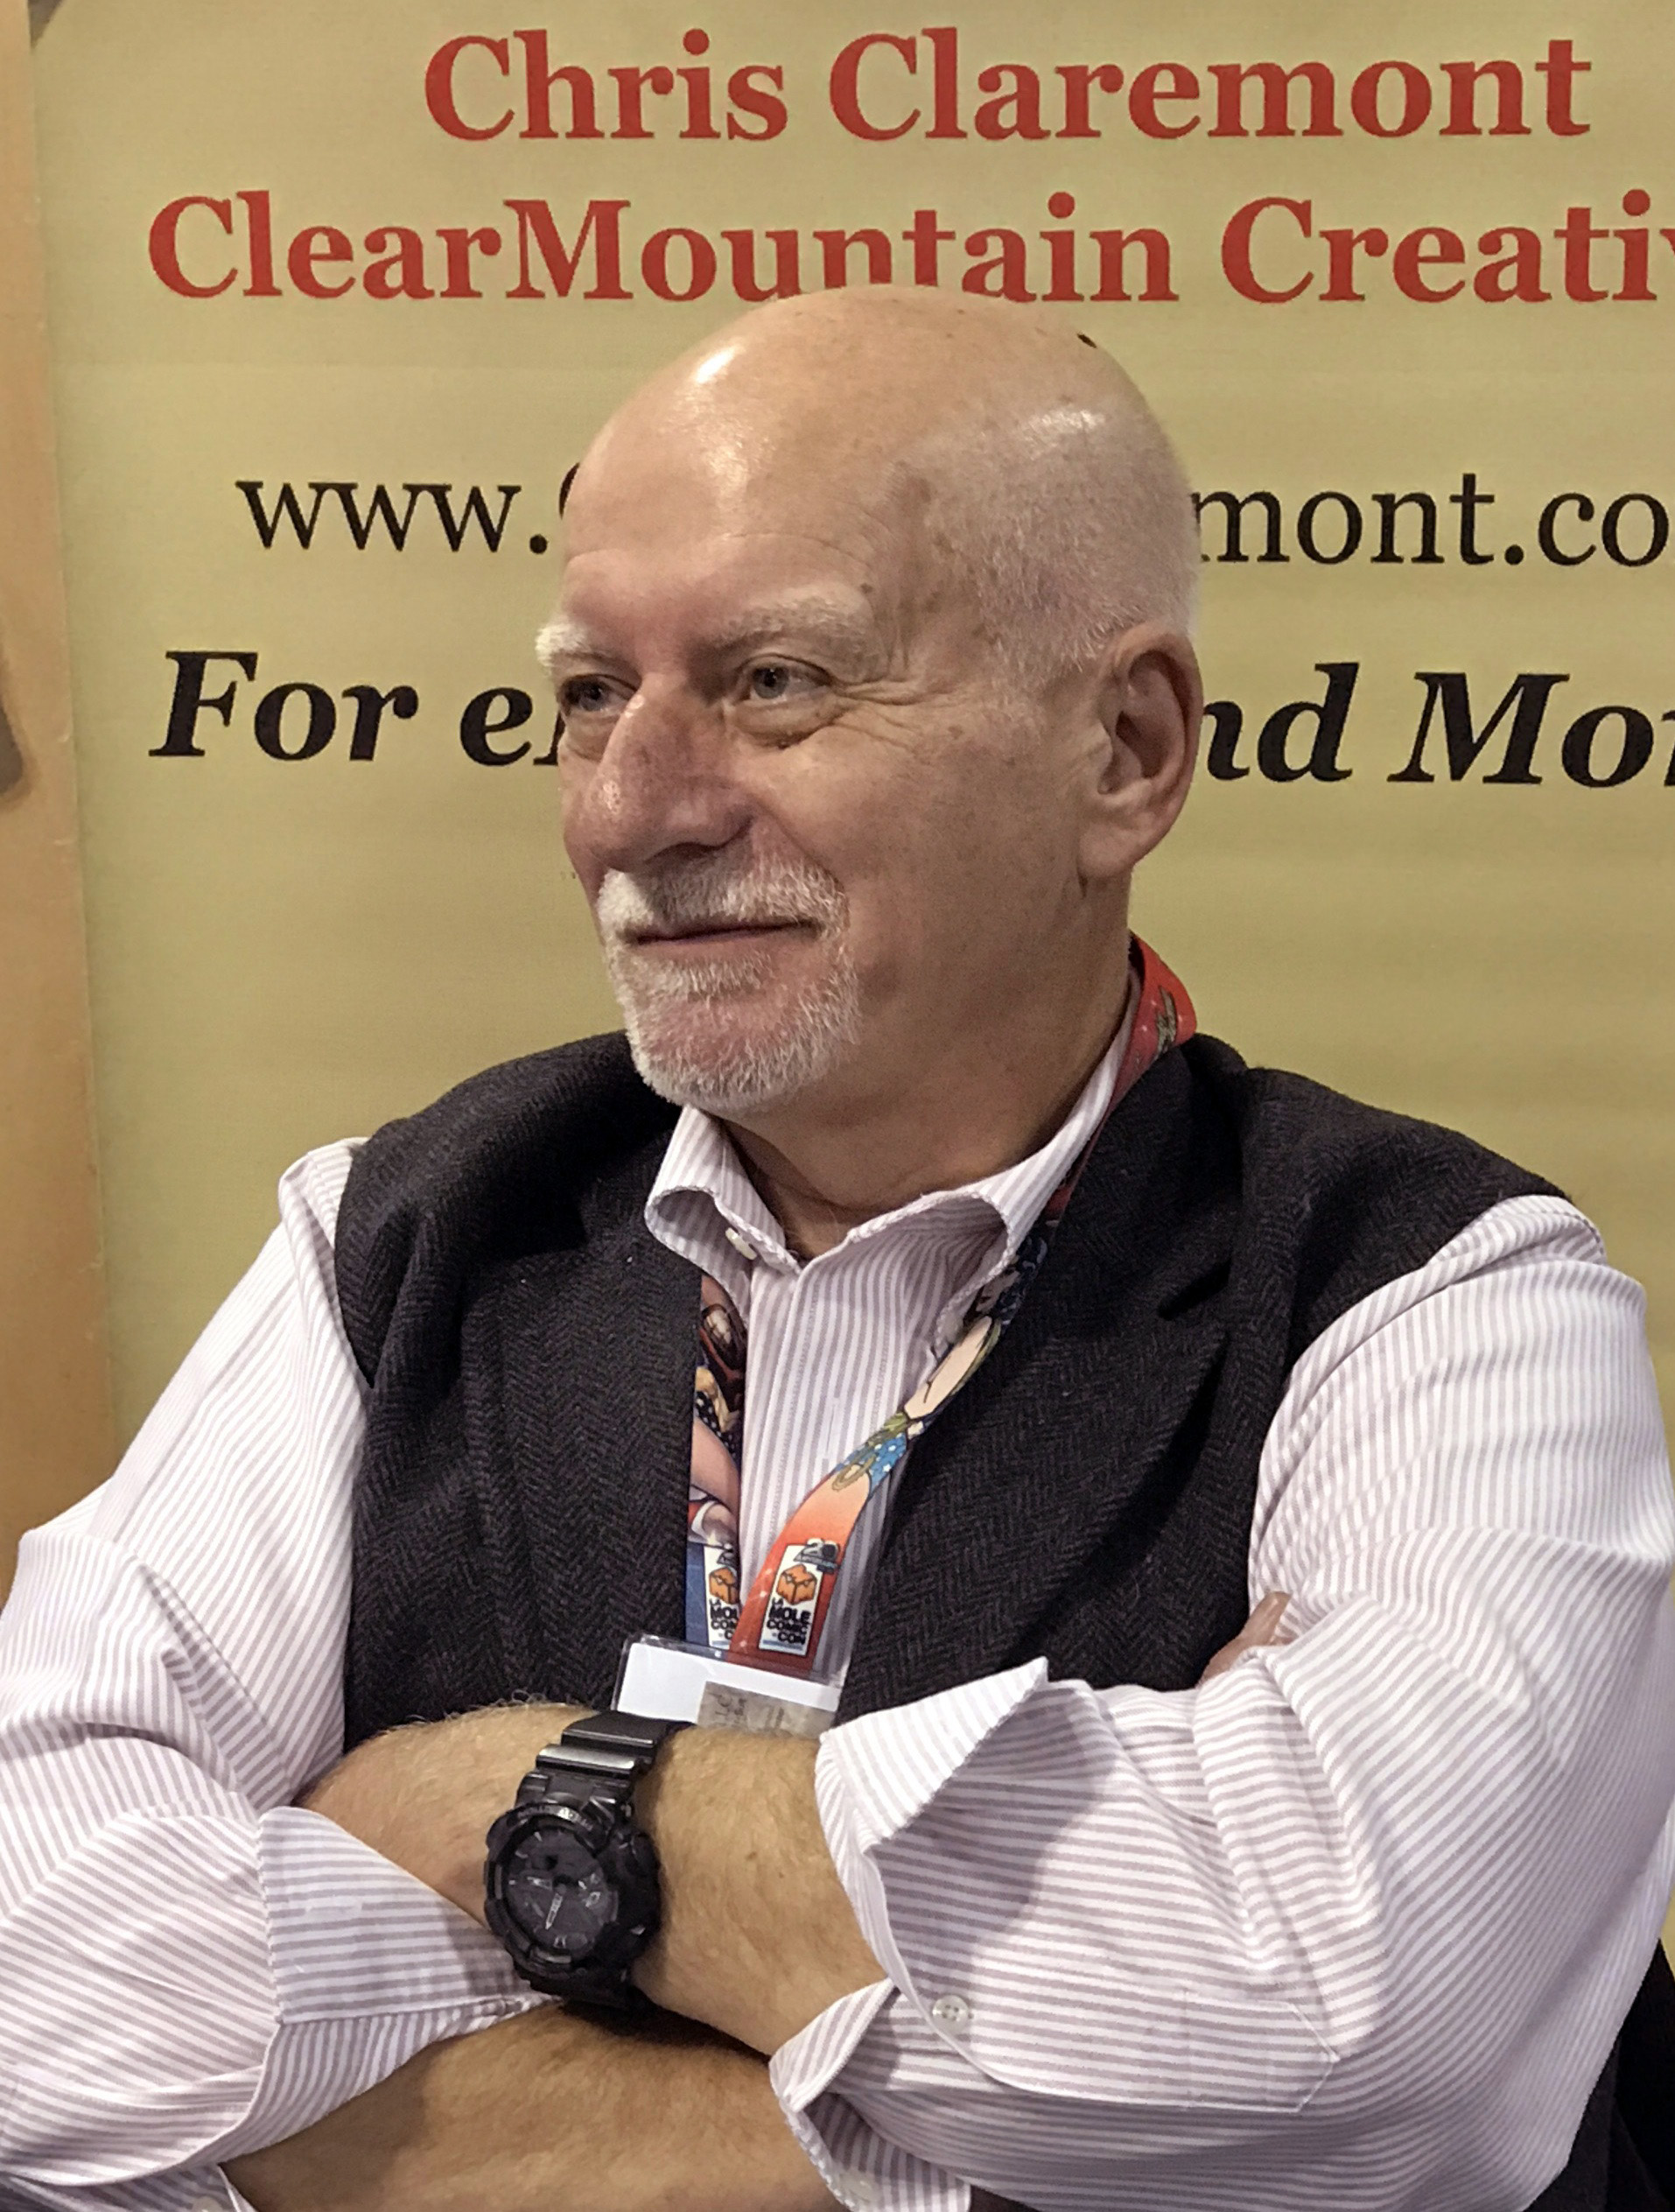 Chris Claremont - Wikipedia